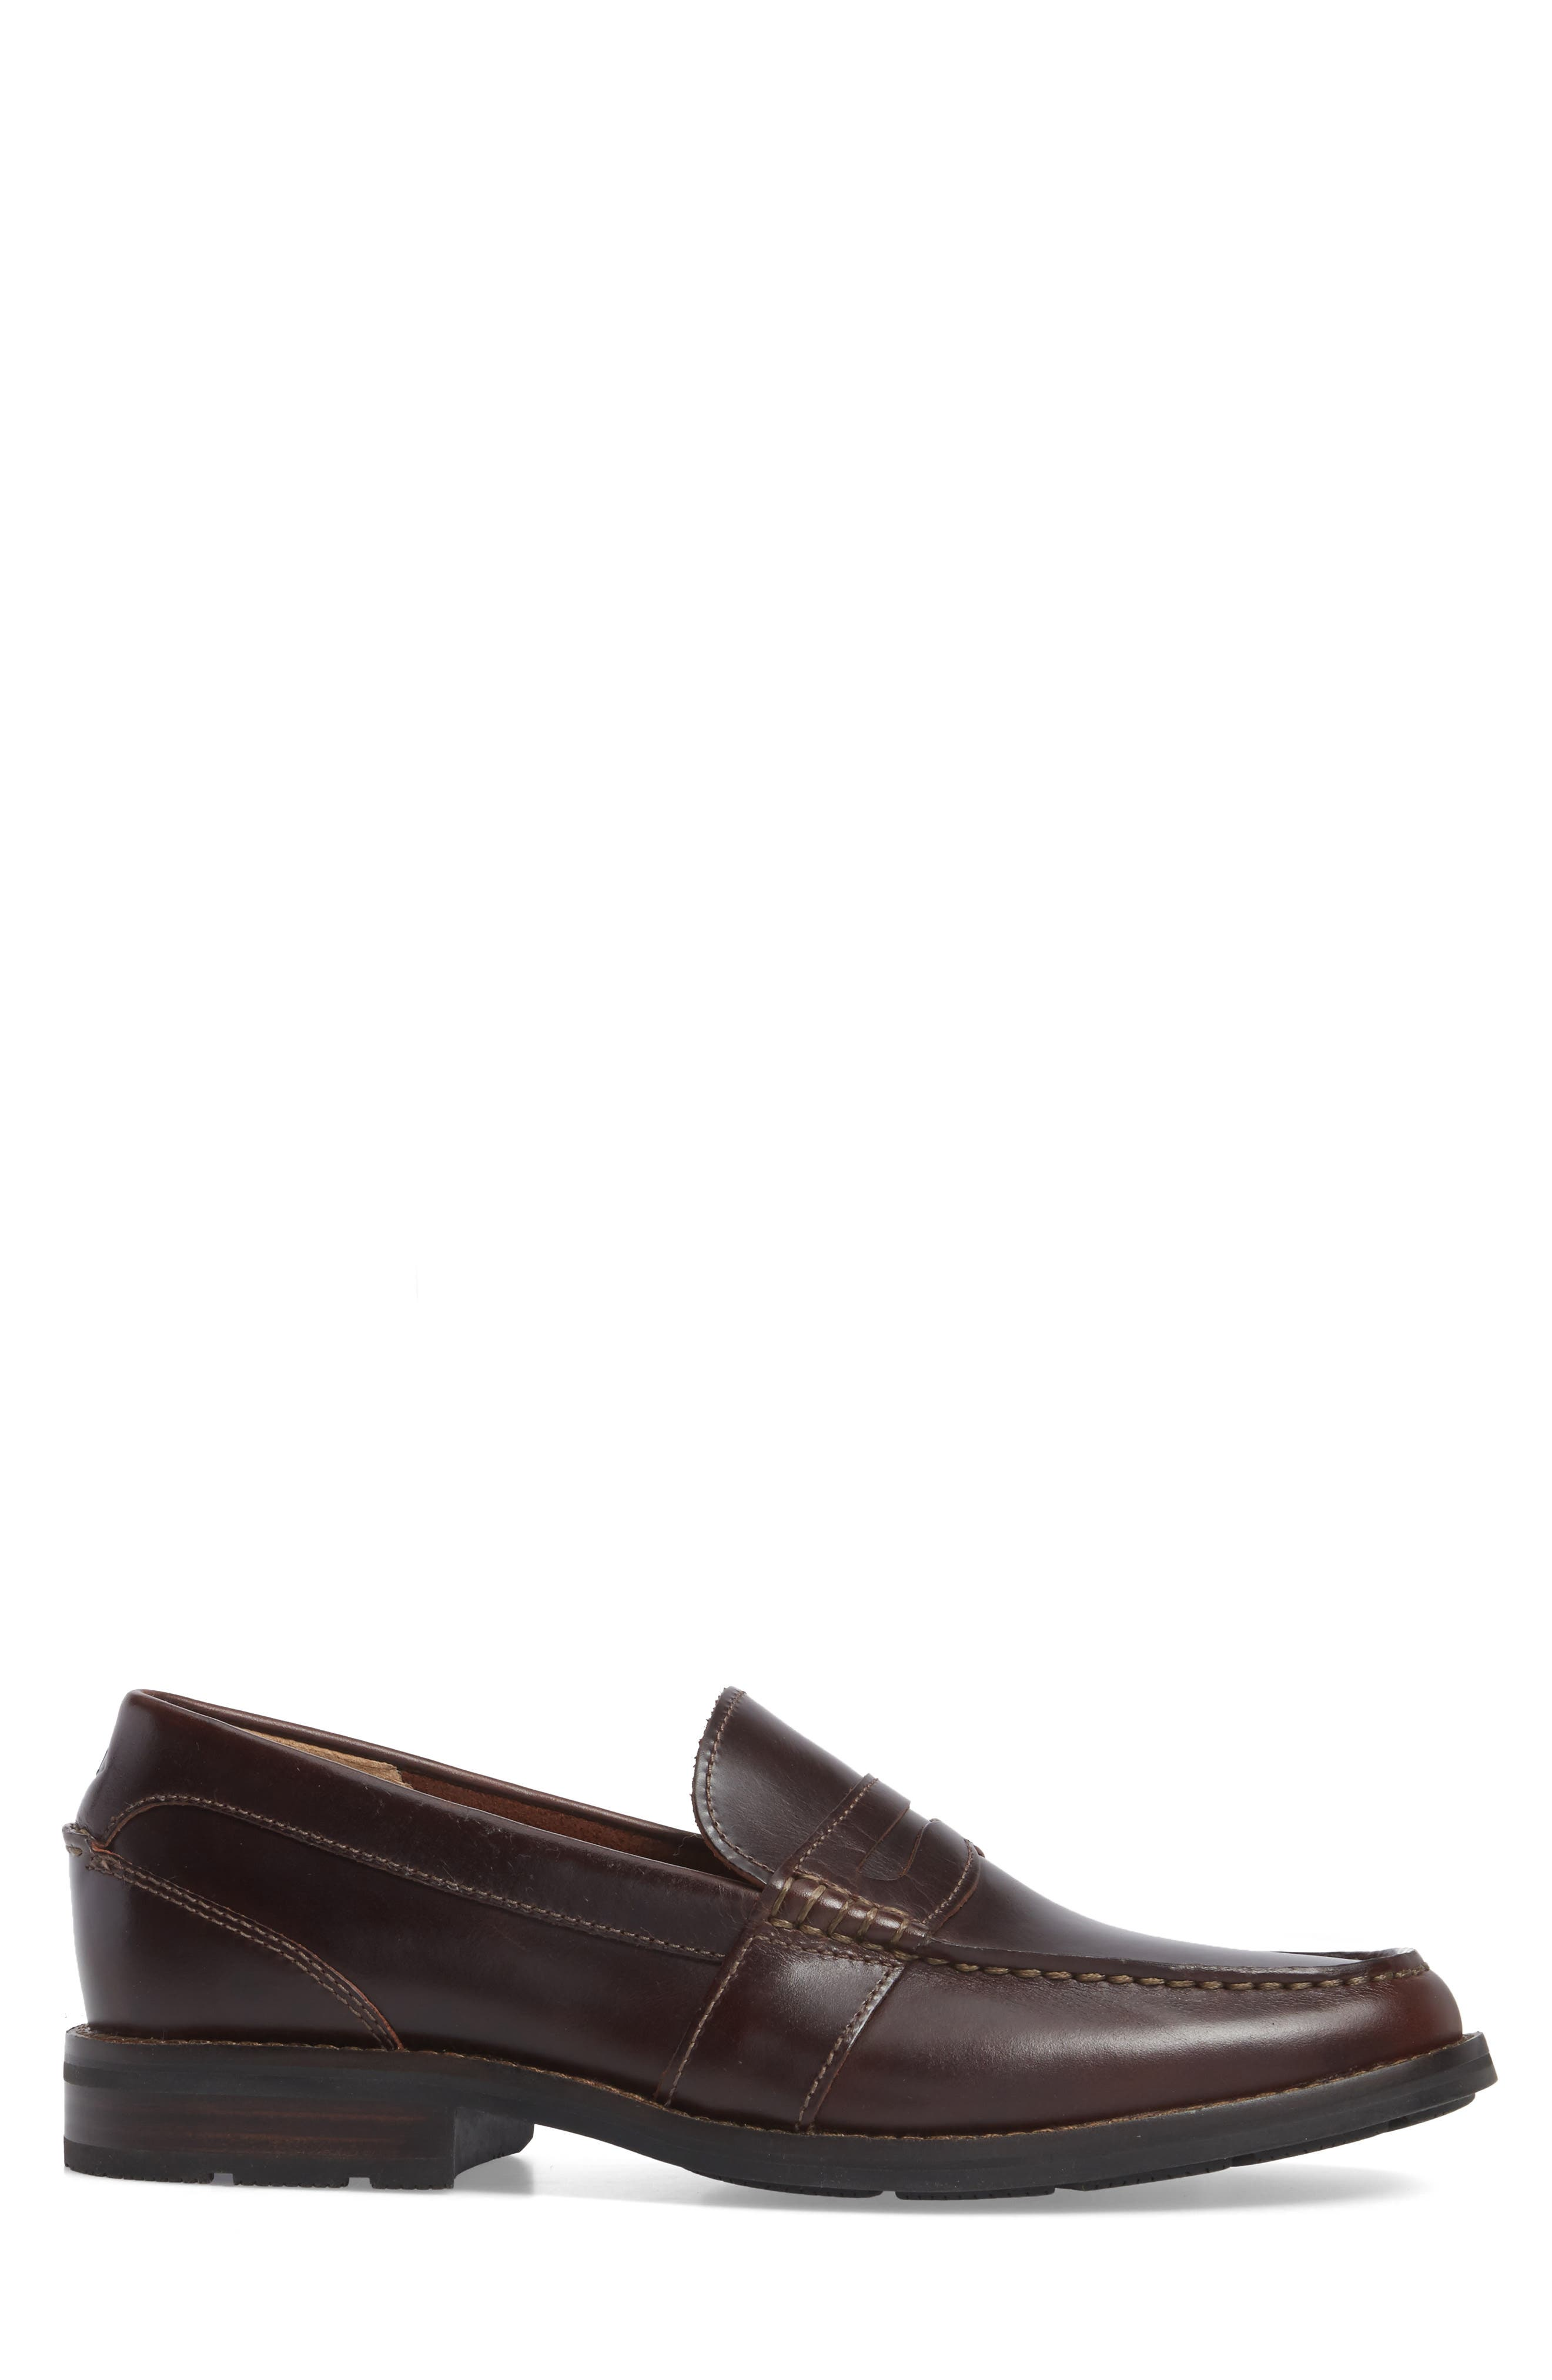 Essex Penny Loafer,                             Alternate thumbnail 3, color,                             AMARETTO LEATHER